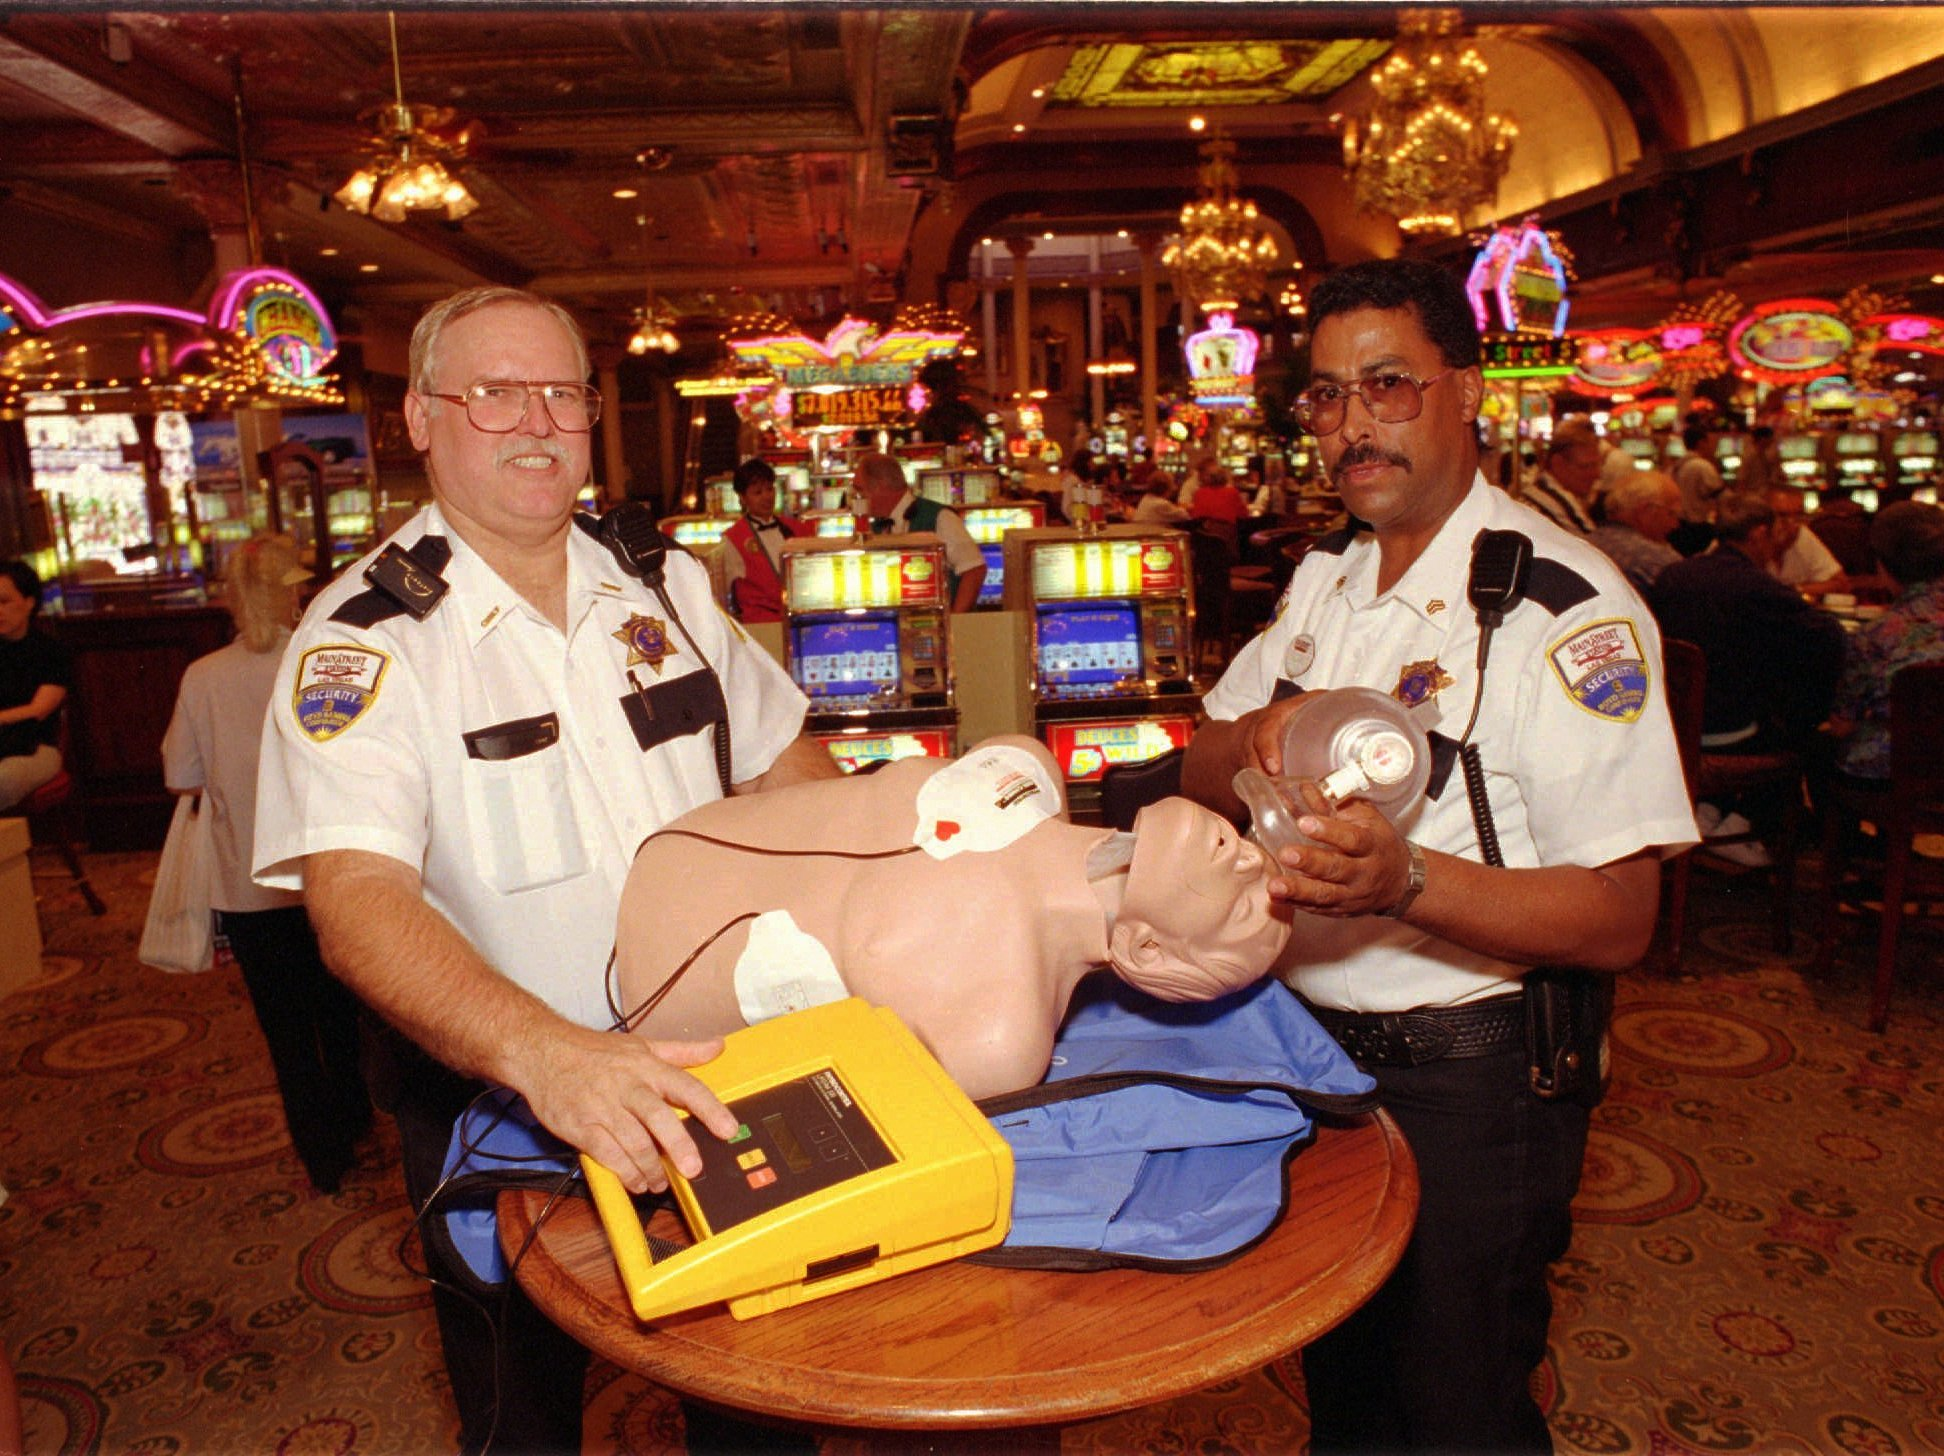 To Save A Life, Odds Favor Defibrillators In Casinos | Health News ...